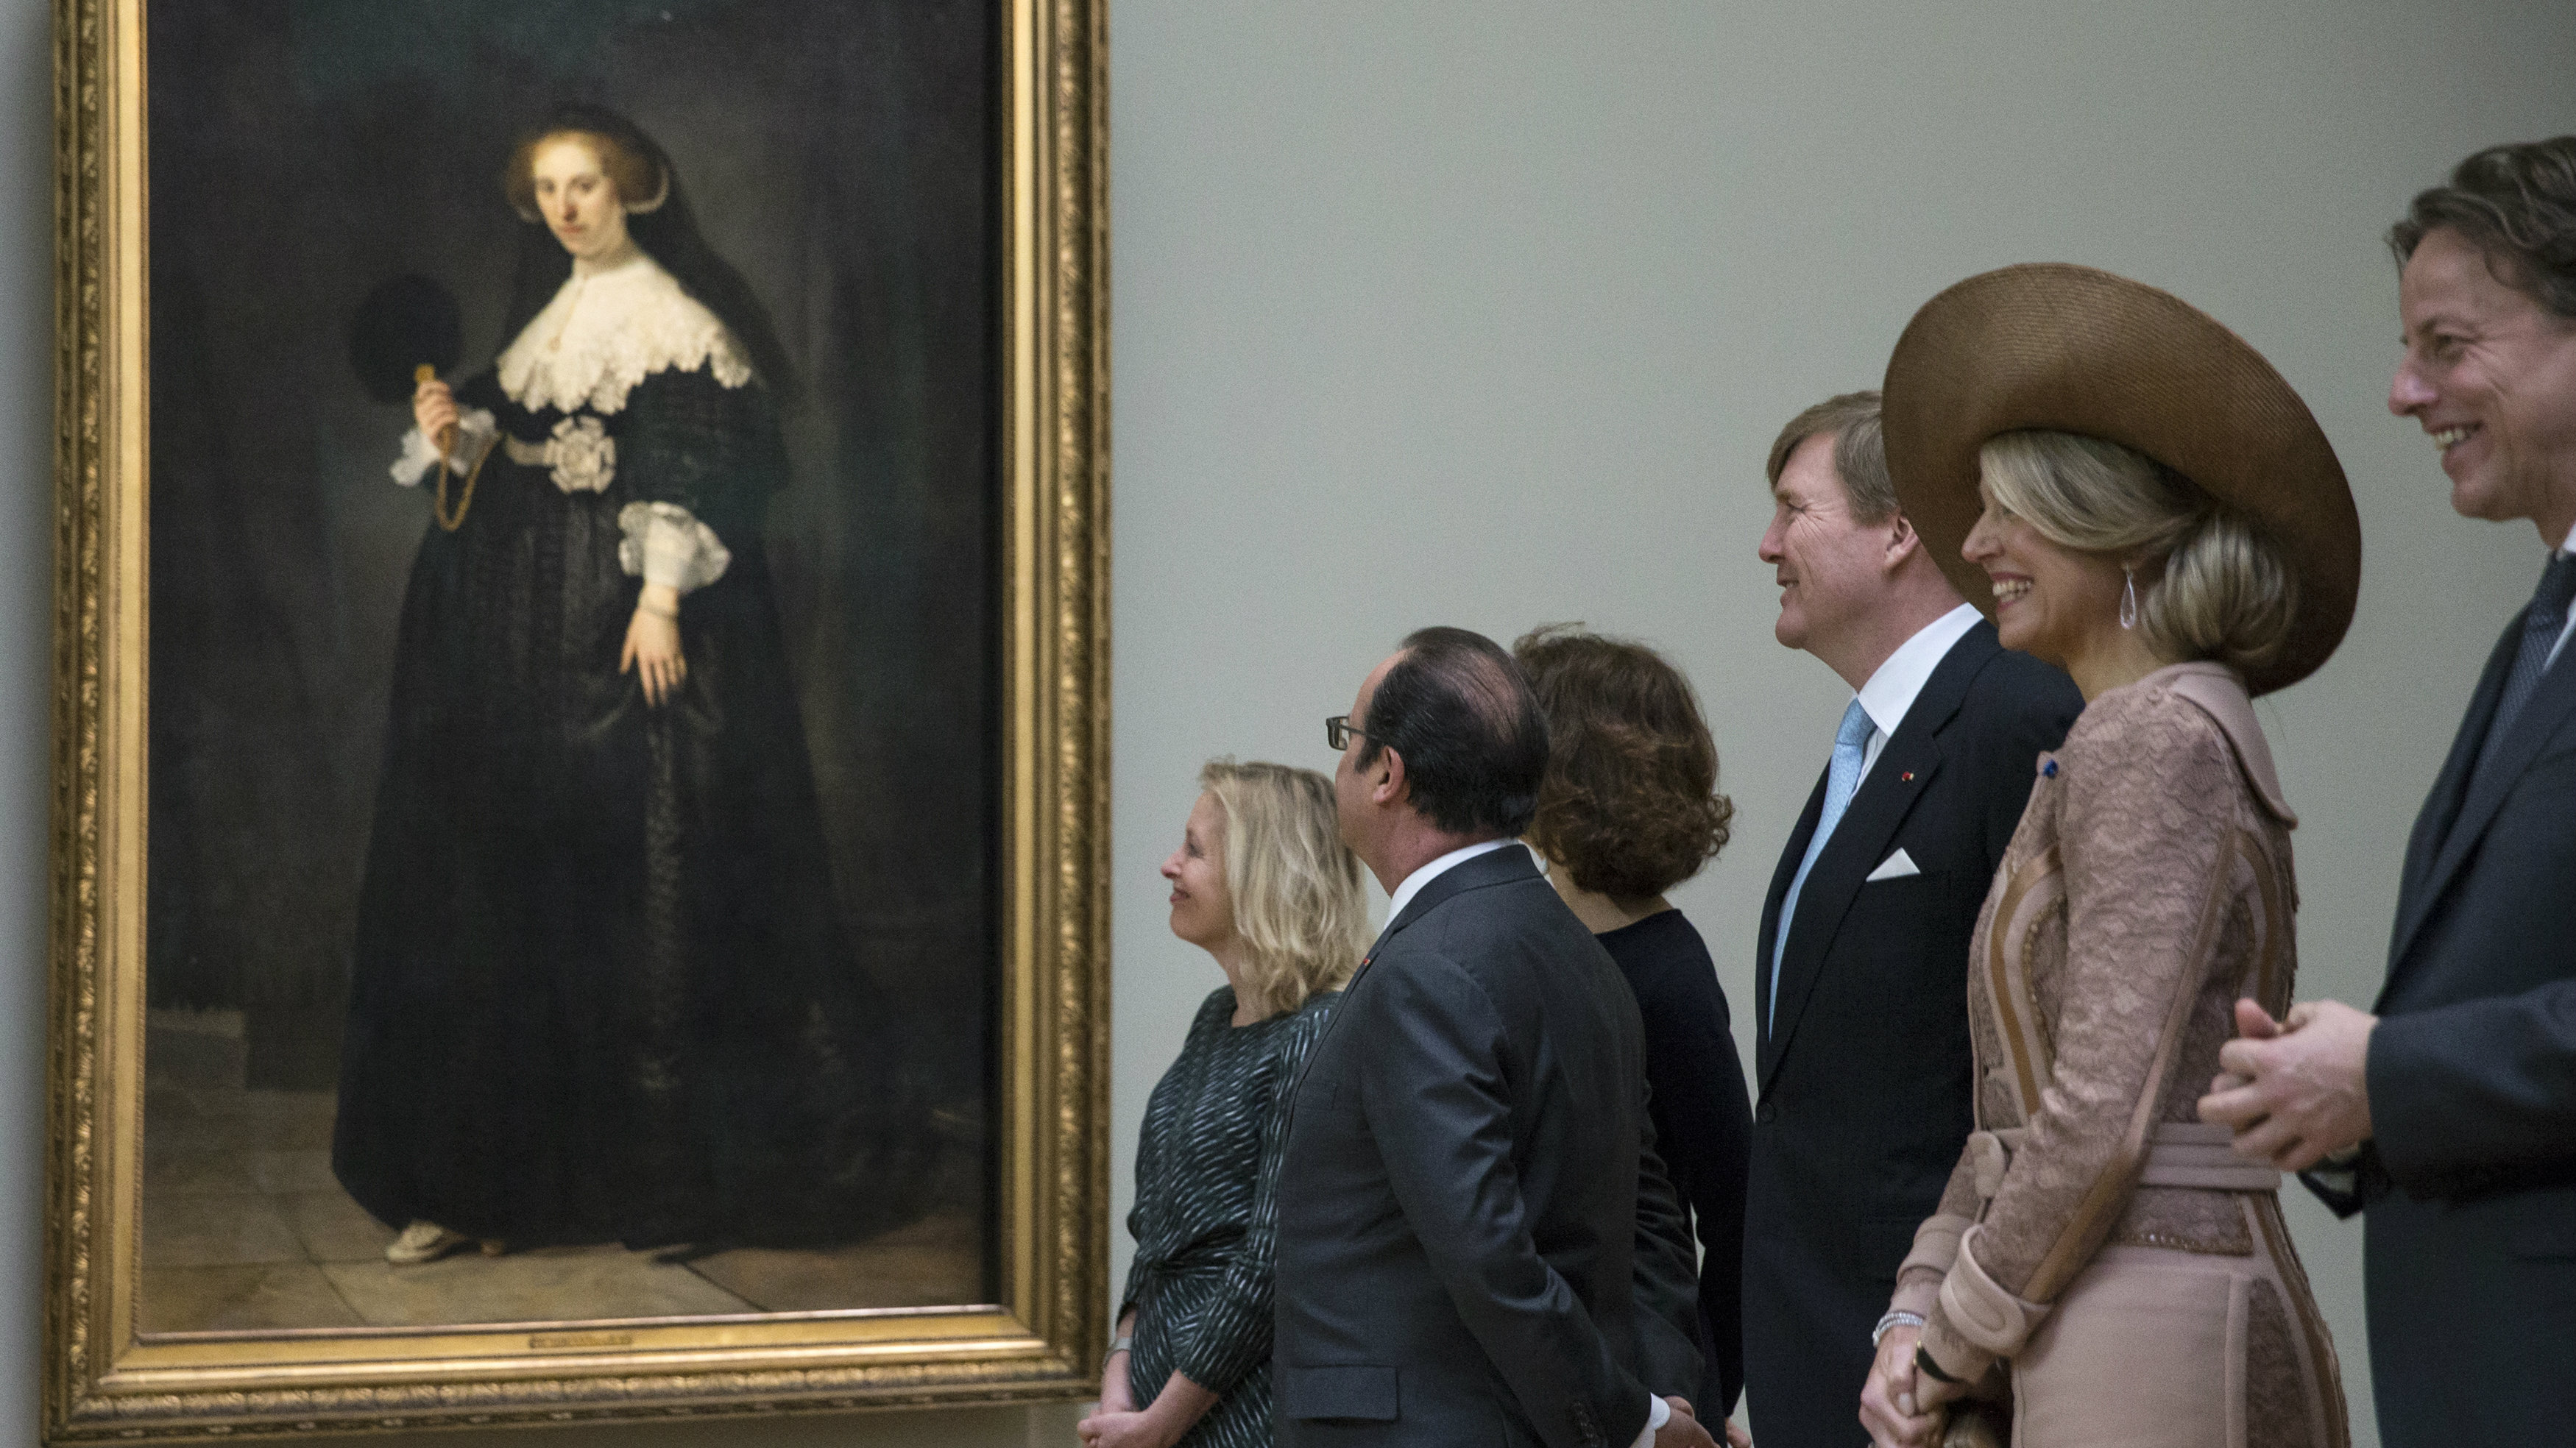 French President Francois Hollande (2ndL), King Willem Alexander (C) and Queen Maxima (2ndR) of the Netherlands stand in front of a Rembrandt painting, Portrait of Oopjen Coppit, during a visit at the Louvre Museum in Paris, France, as part of their State visit to France March 10, 2016. REUTERS/Etienne Laurent/Pool